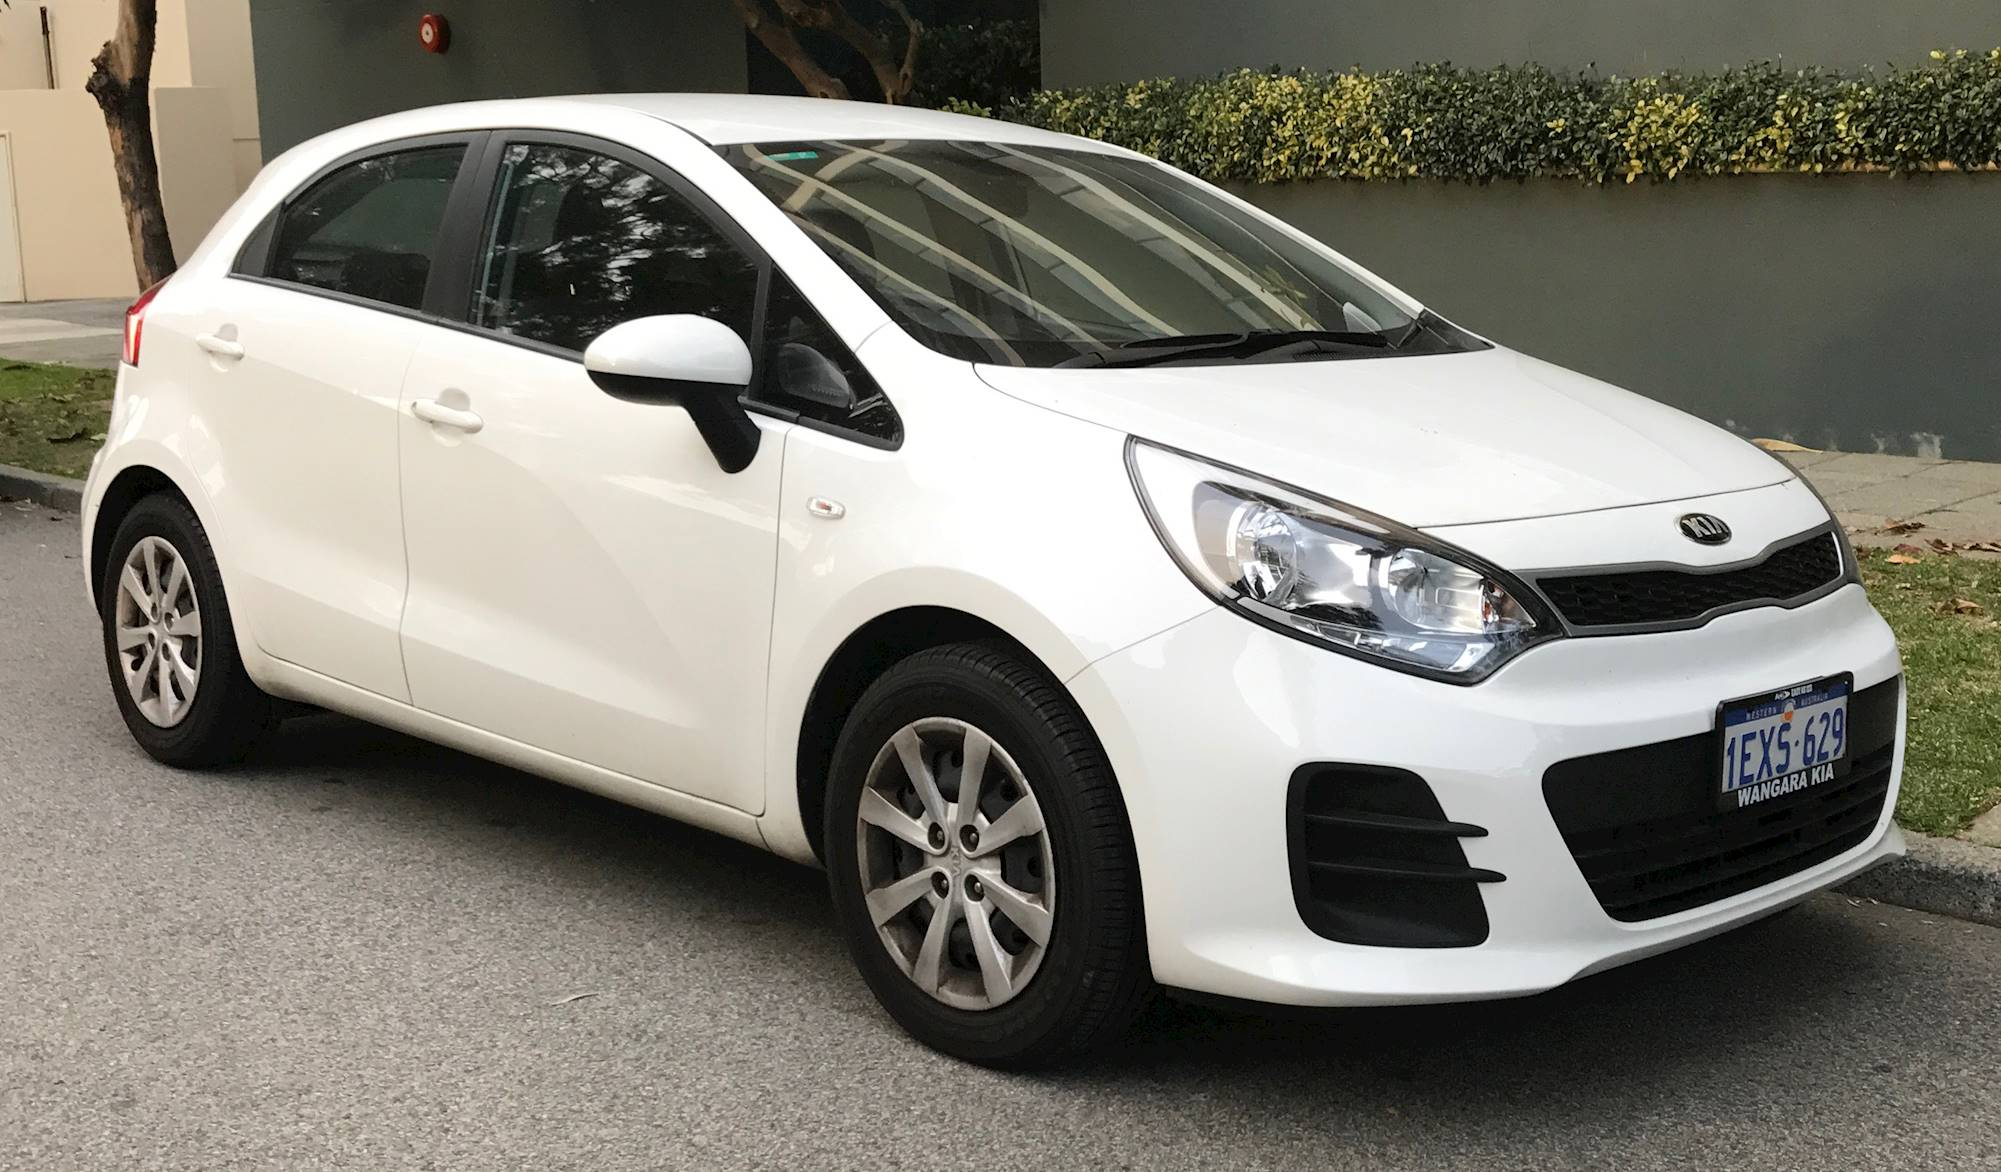 Jun Kia Rio Exhaust likewise Kia Rio Door Front also Kia Rio Navigation together with Kia Rio Lx Sedan Doors furthermore Kia Rio Sx Door Side Profile. on 2015 kia rio hatchback